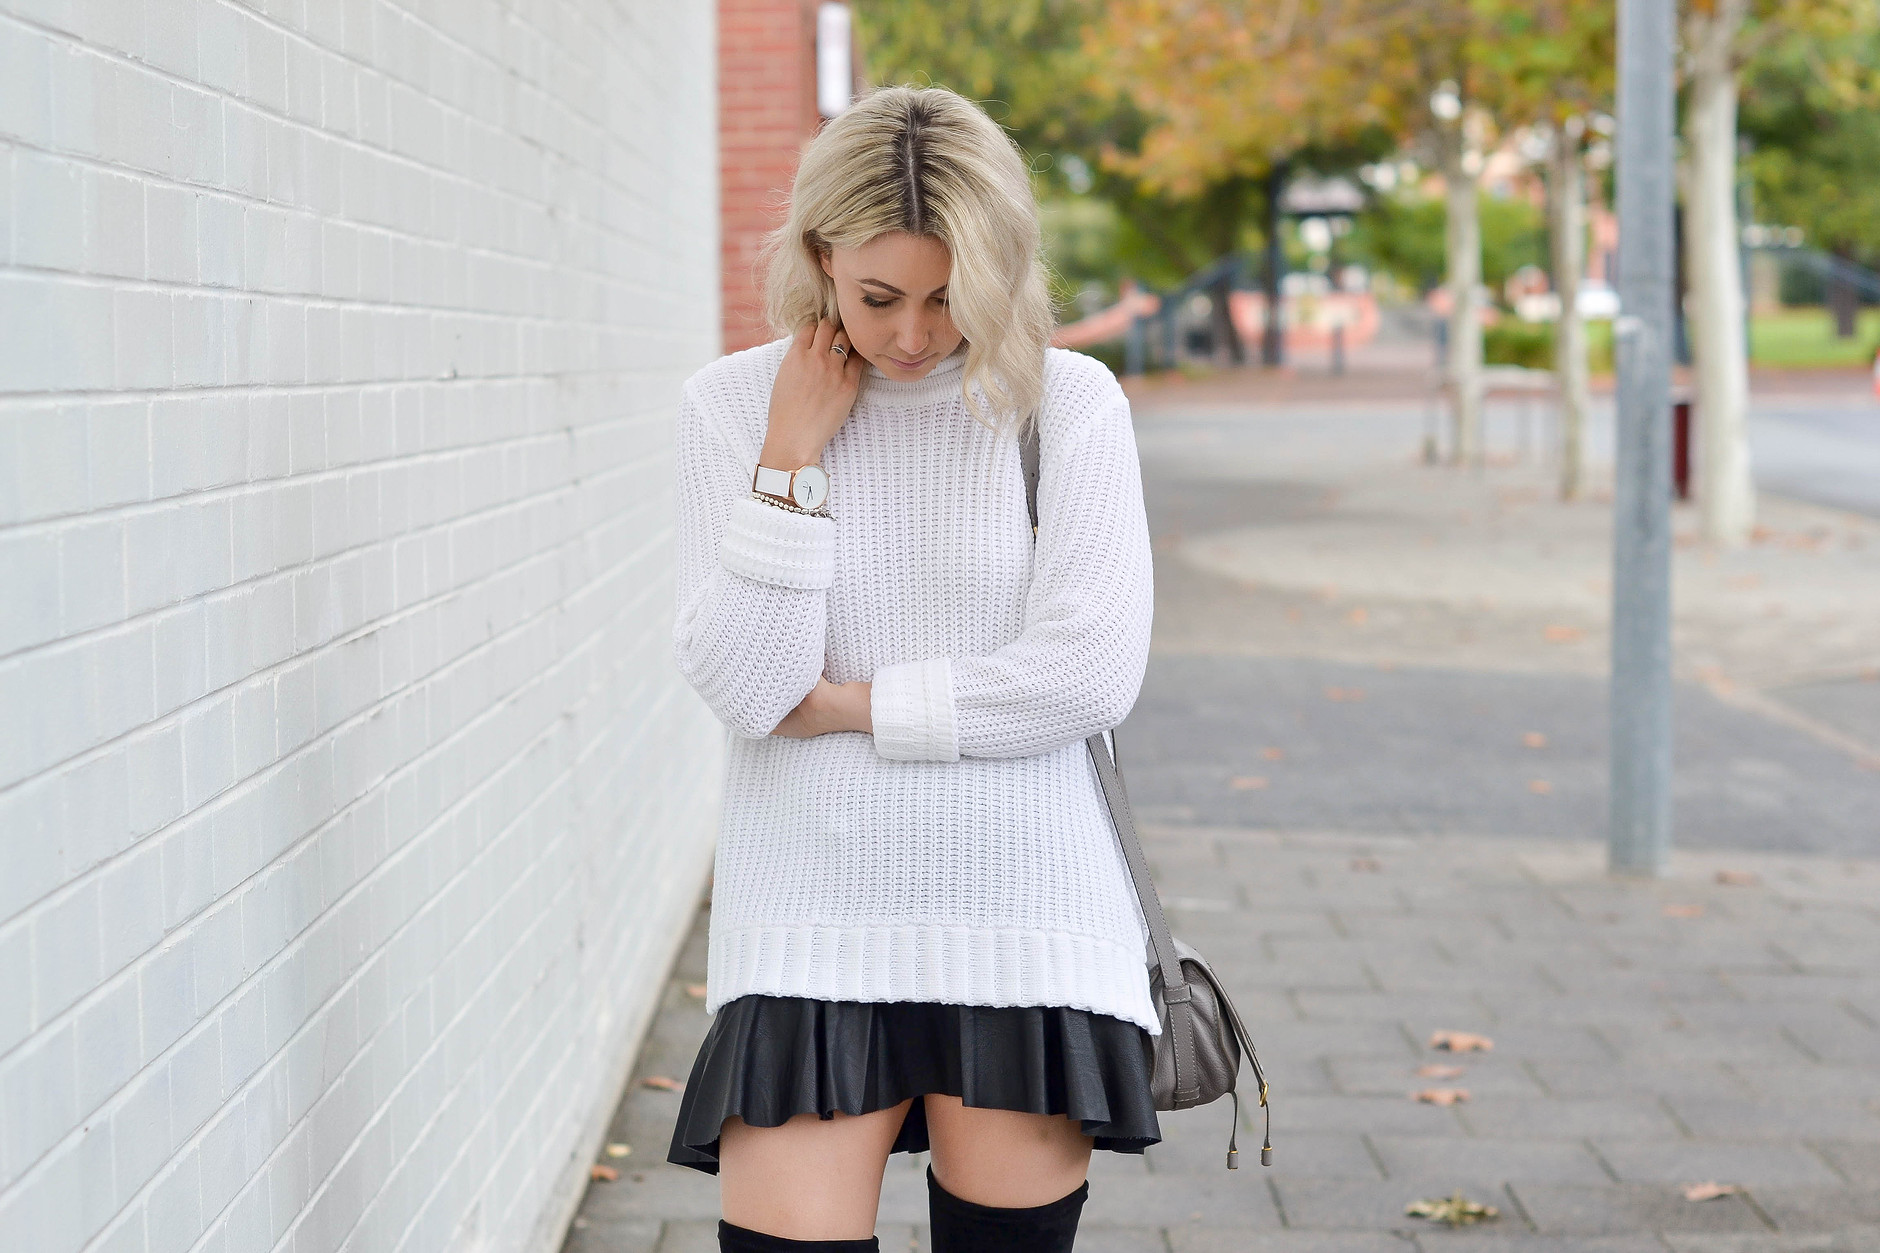 Outfit:Shilla  Divine Jumper from  Lock & Key Clothing ,Faux leather skirt from Zara,Chloe Bag from Matches Fashion, Why Watches Watch and Mollini  Laurit Boots from  Lock & Key Clothing